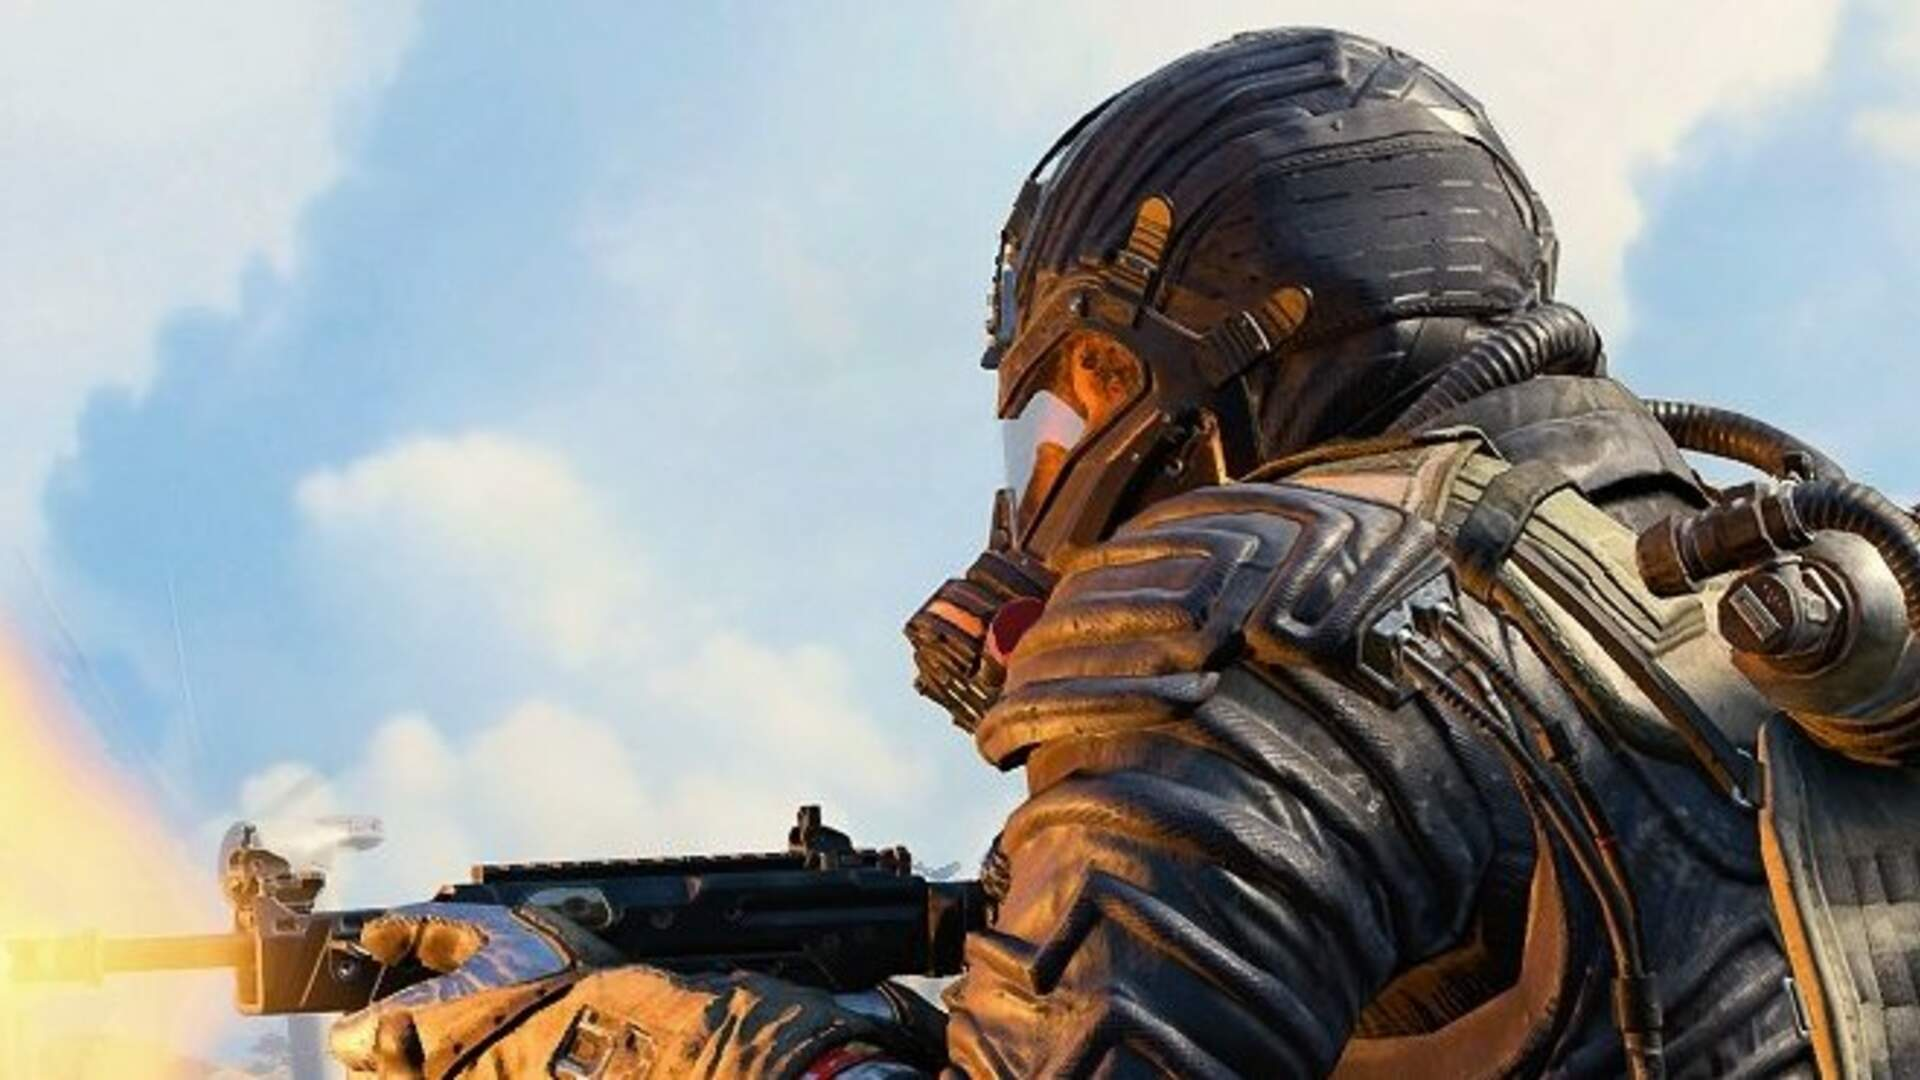 Call of Duty Black Ops 4 Sets Digital Sales Record as Physical Sales Slump